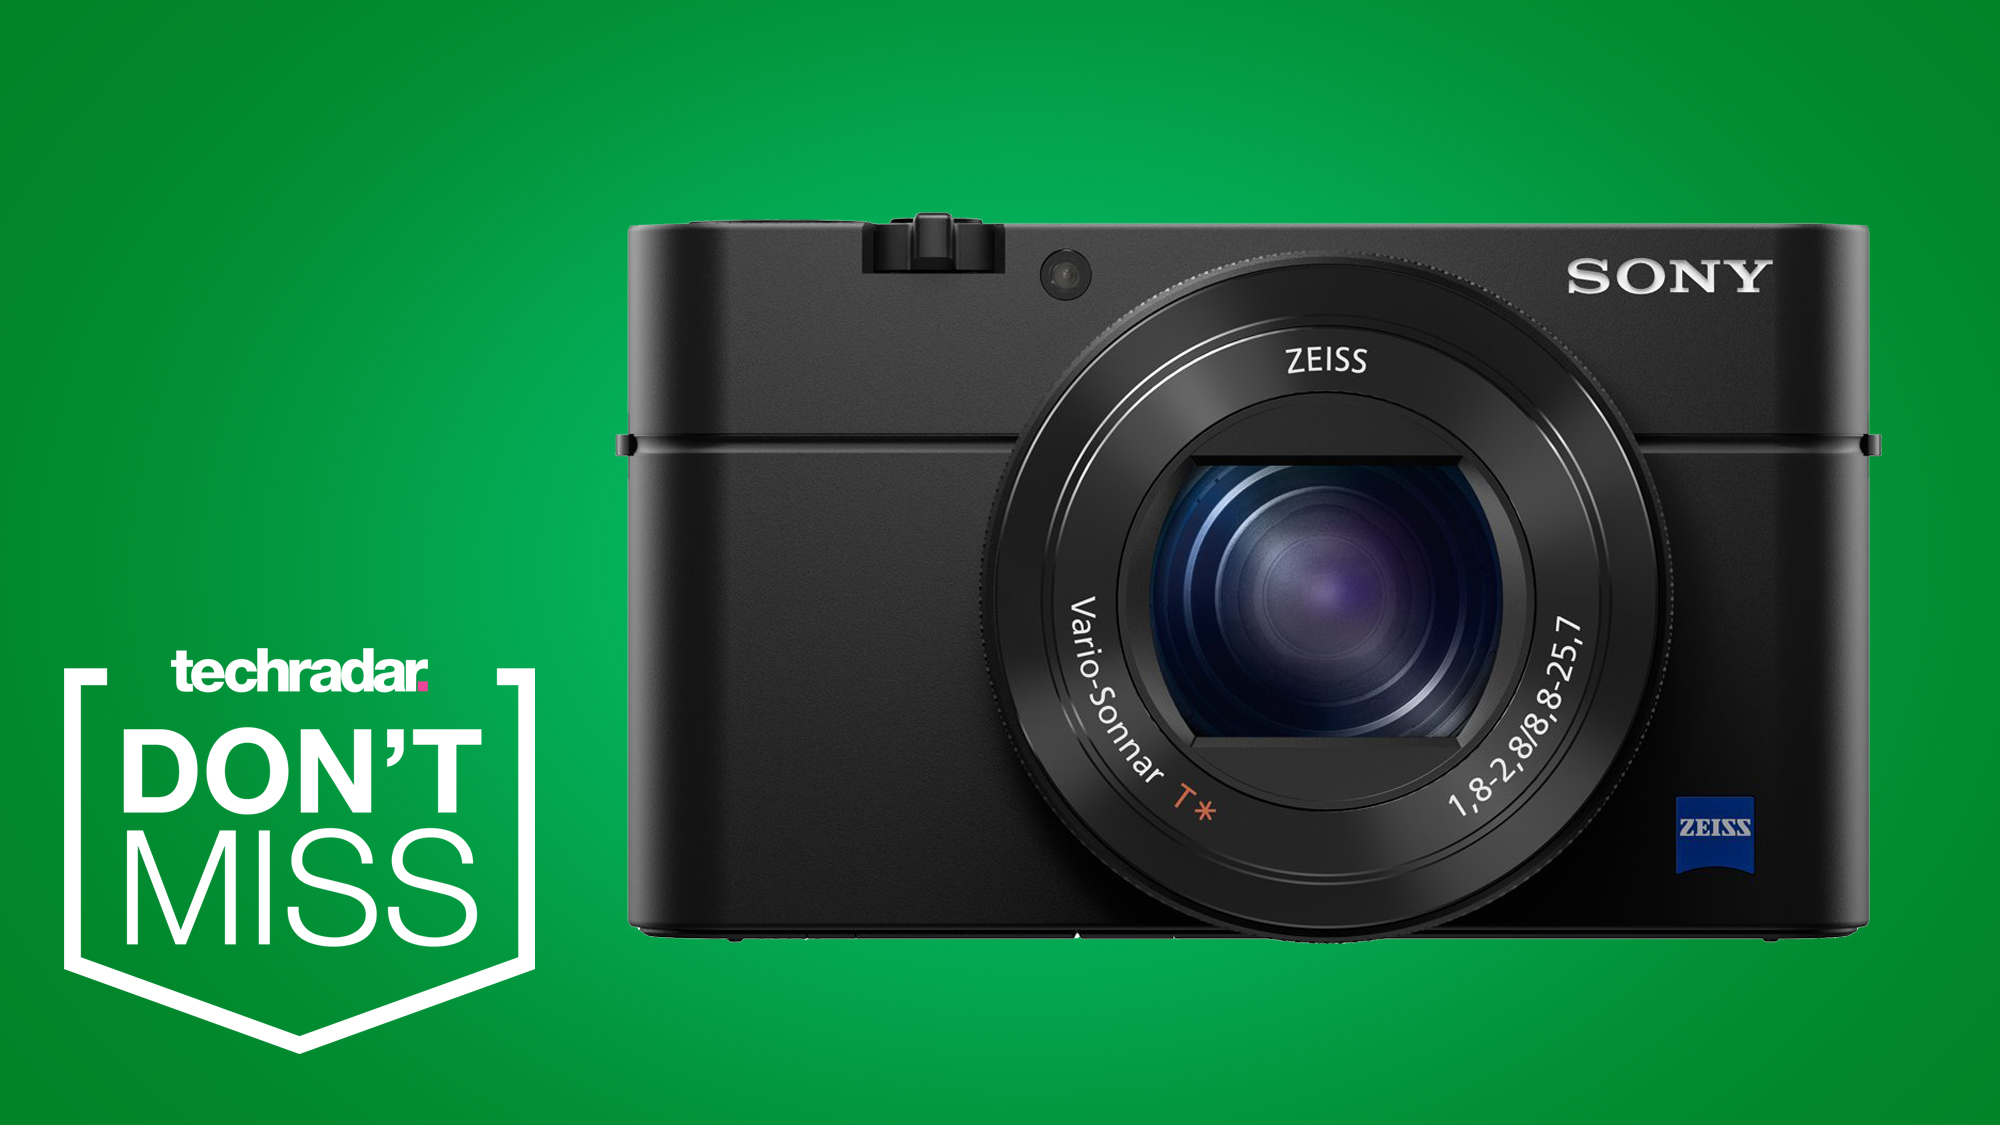 Get 20% off the Sony RX100 IV in Cyber Monday's best compact camera deal